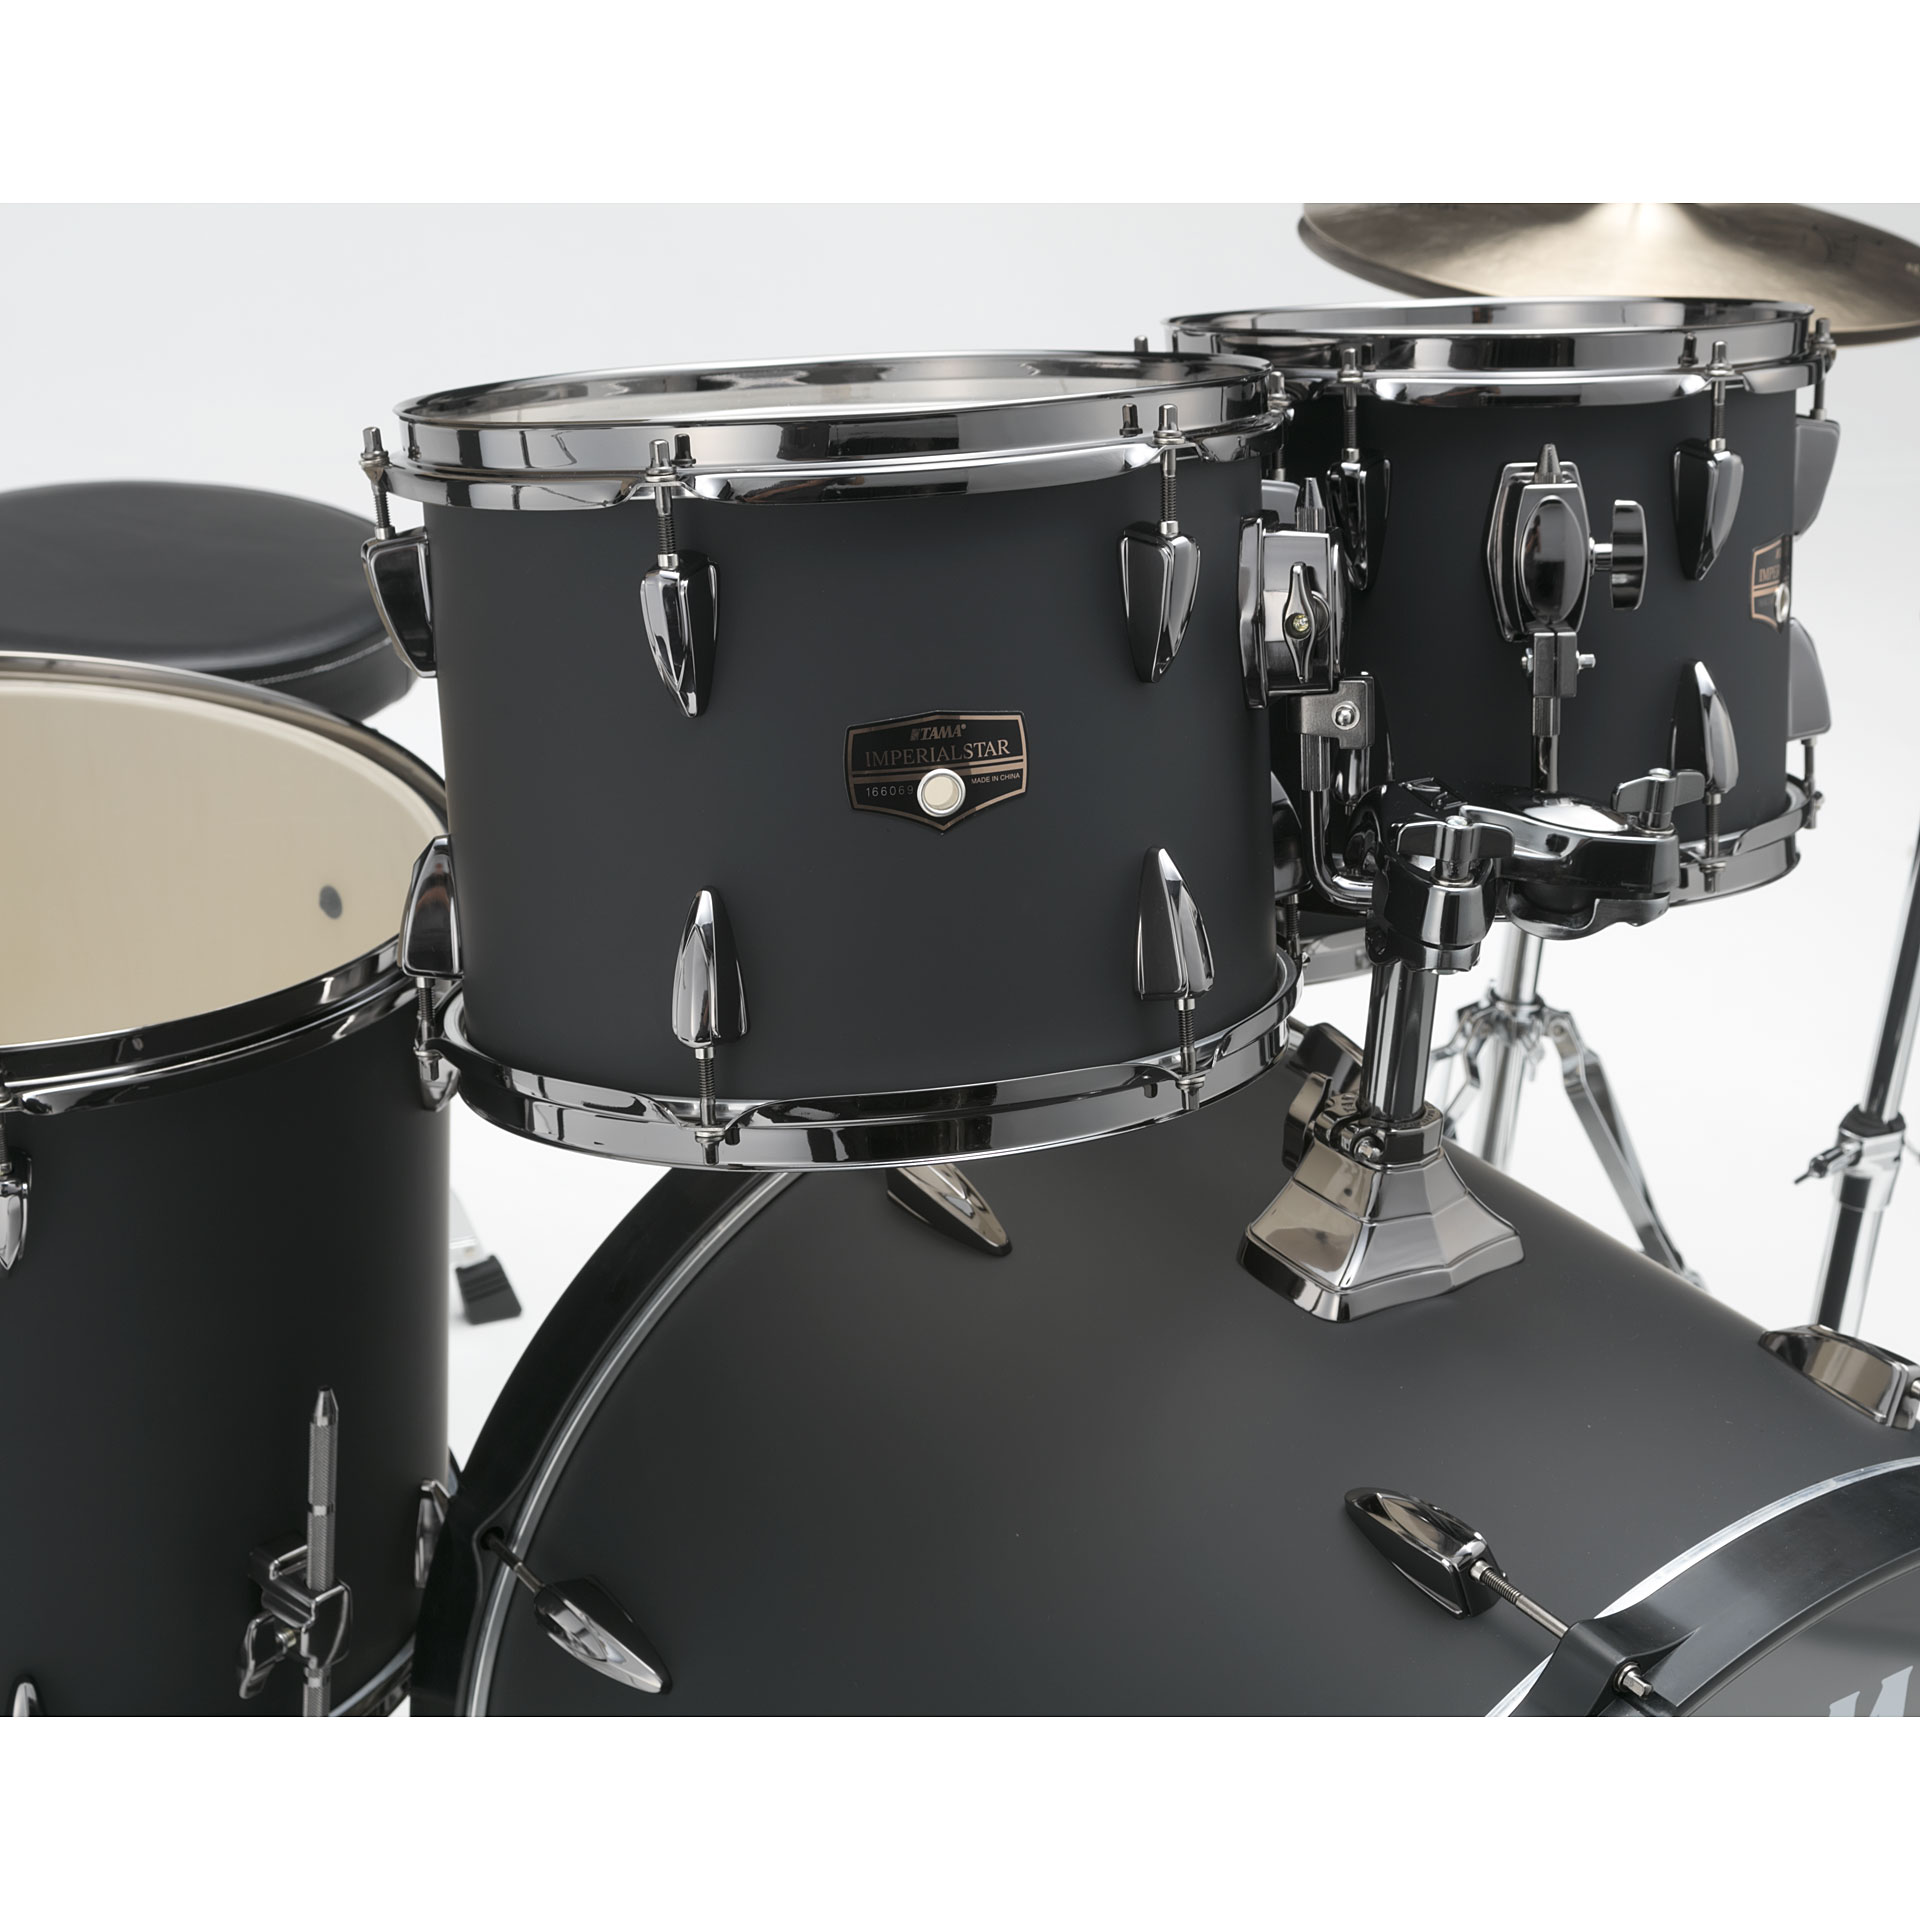 Tama imperialstar 22 blacked out black 10095162 drum kit for Classic house drums